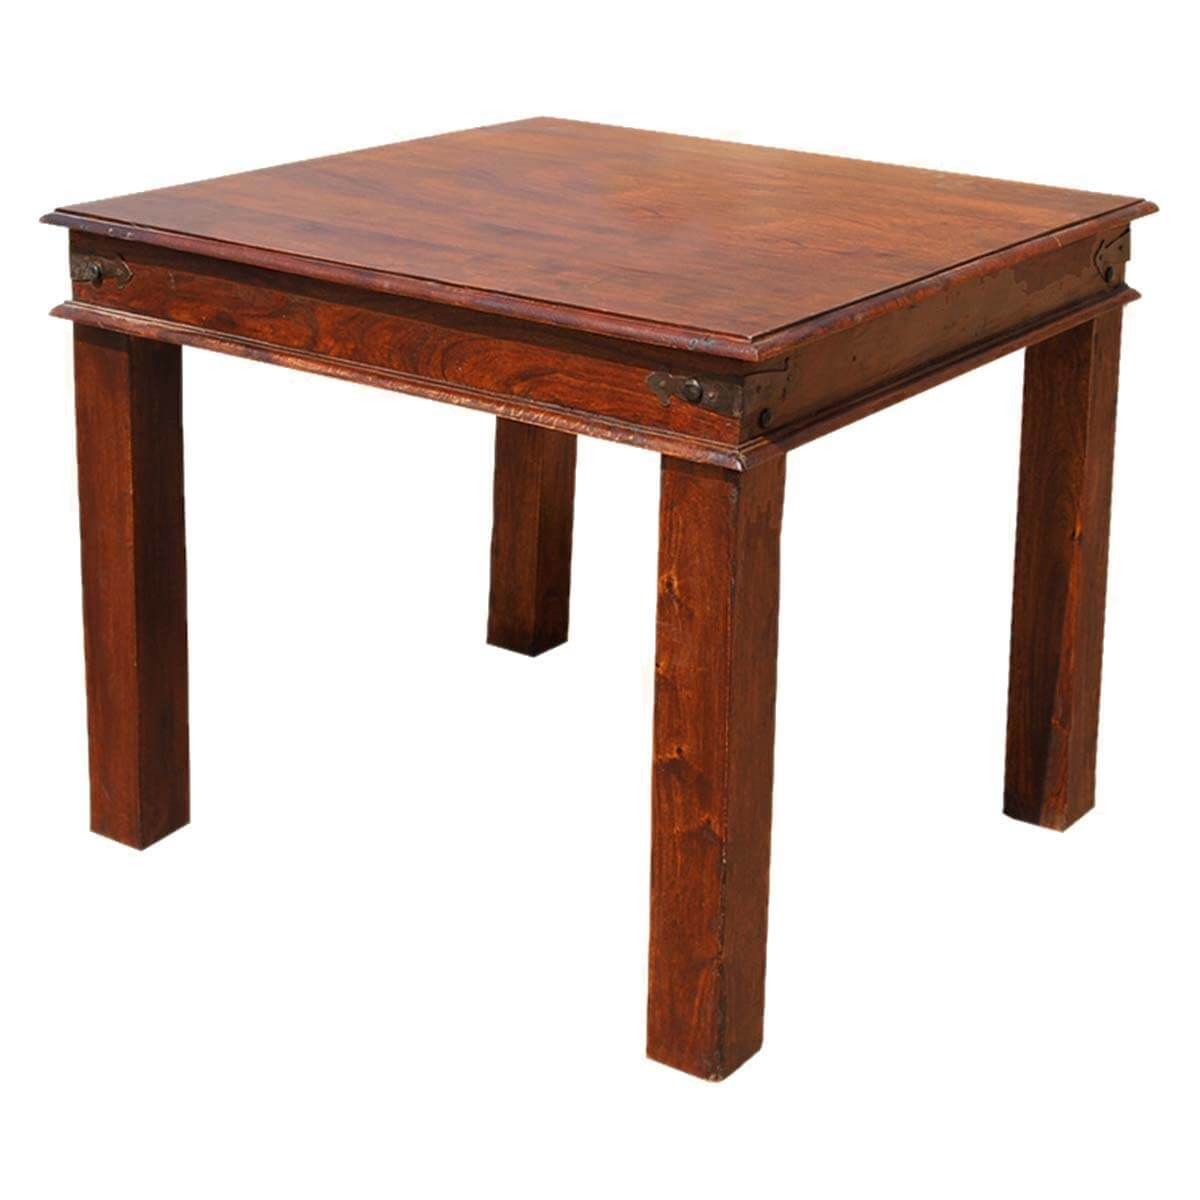 Grogan rustic solid wood square dining table for Solid wood dining table